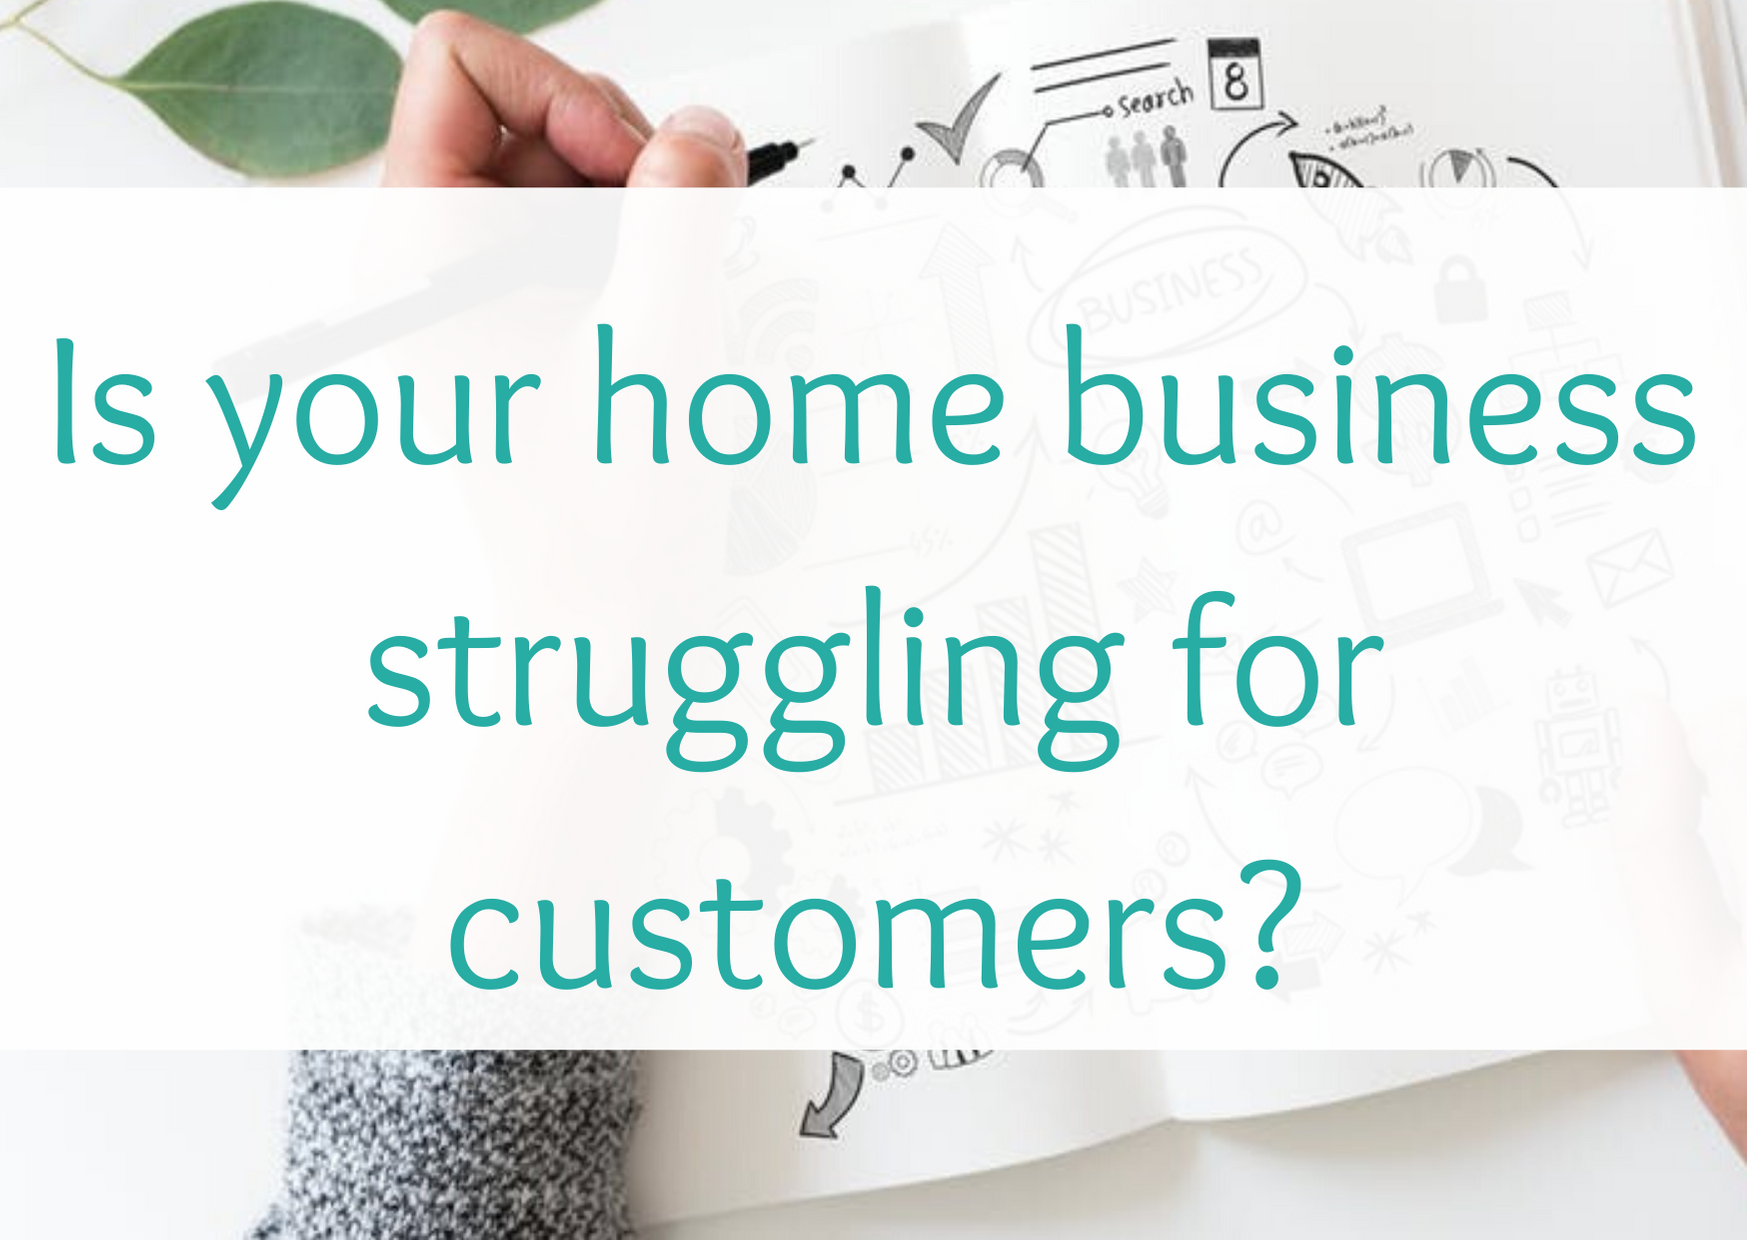 Is your home business struggling for customers?